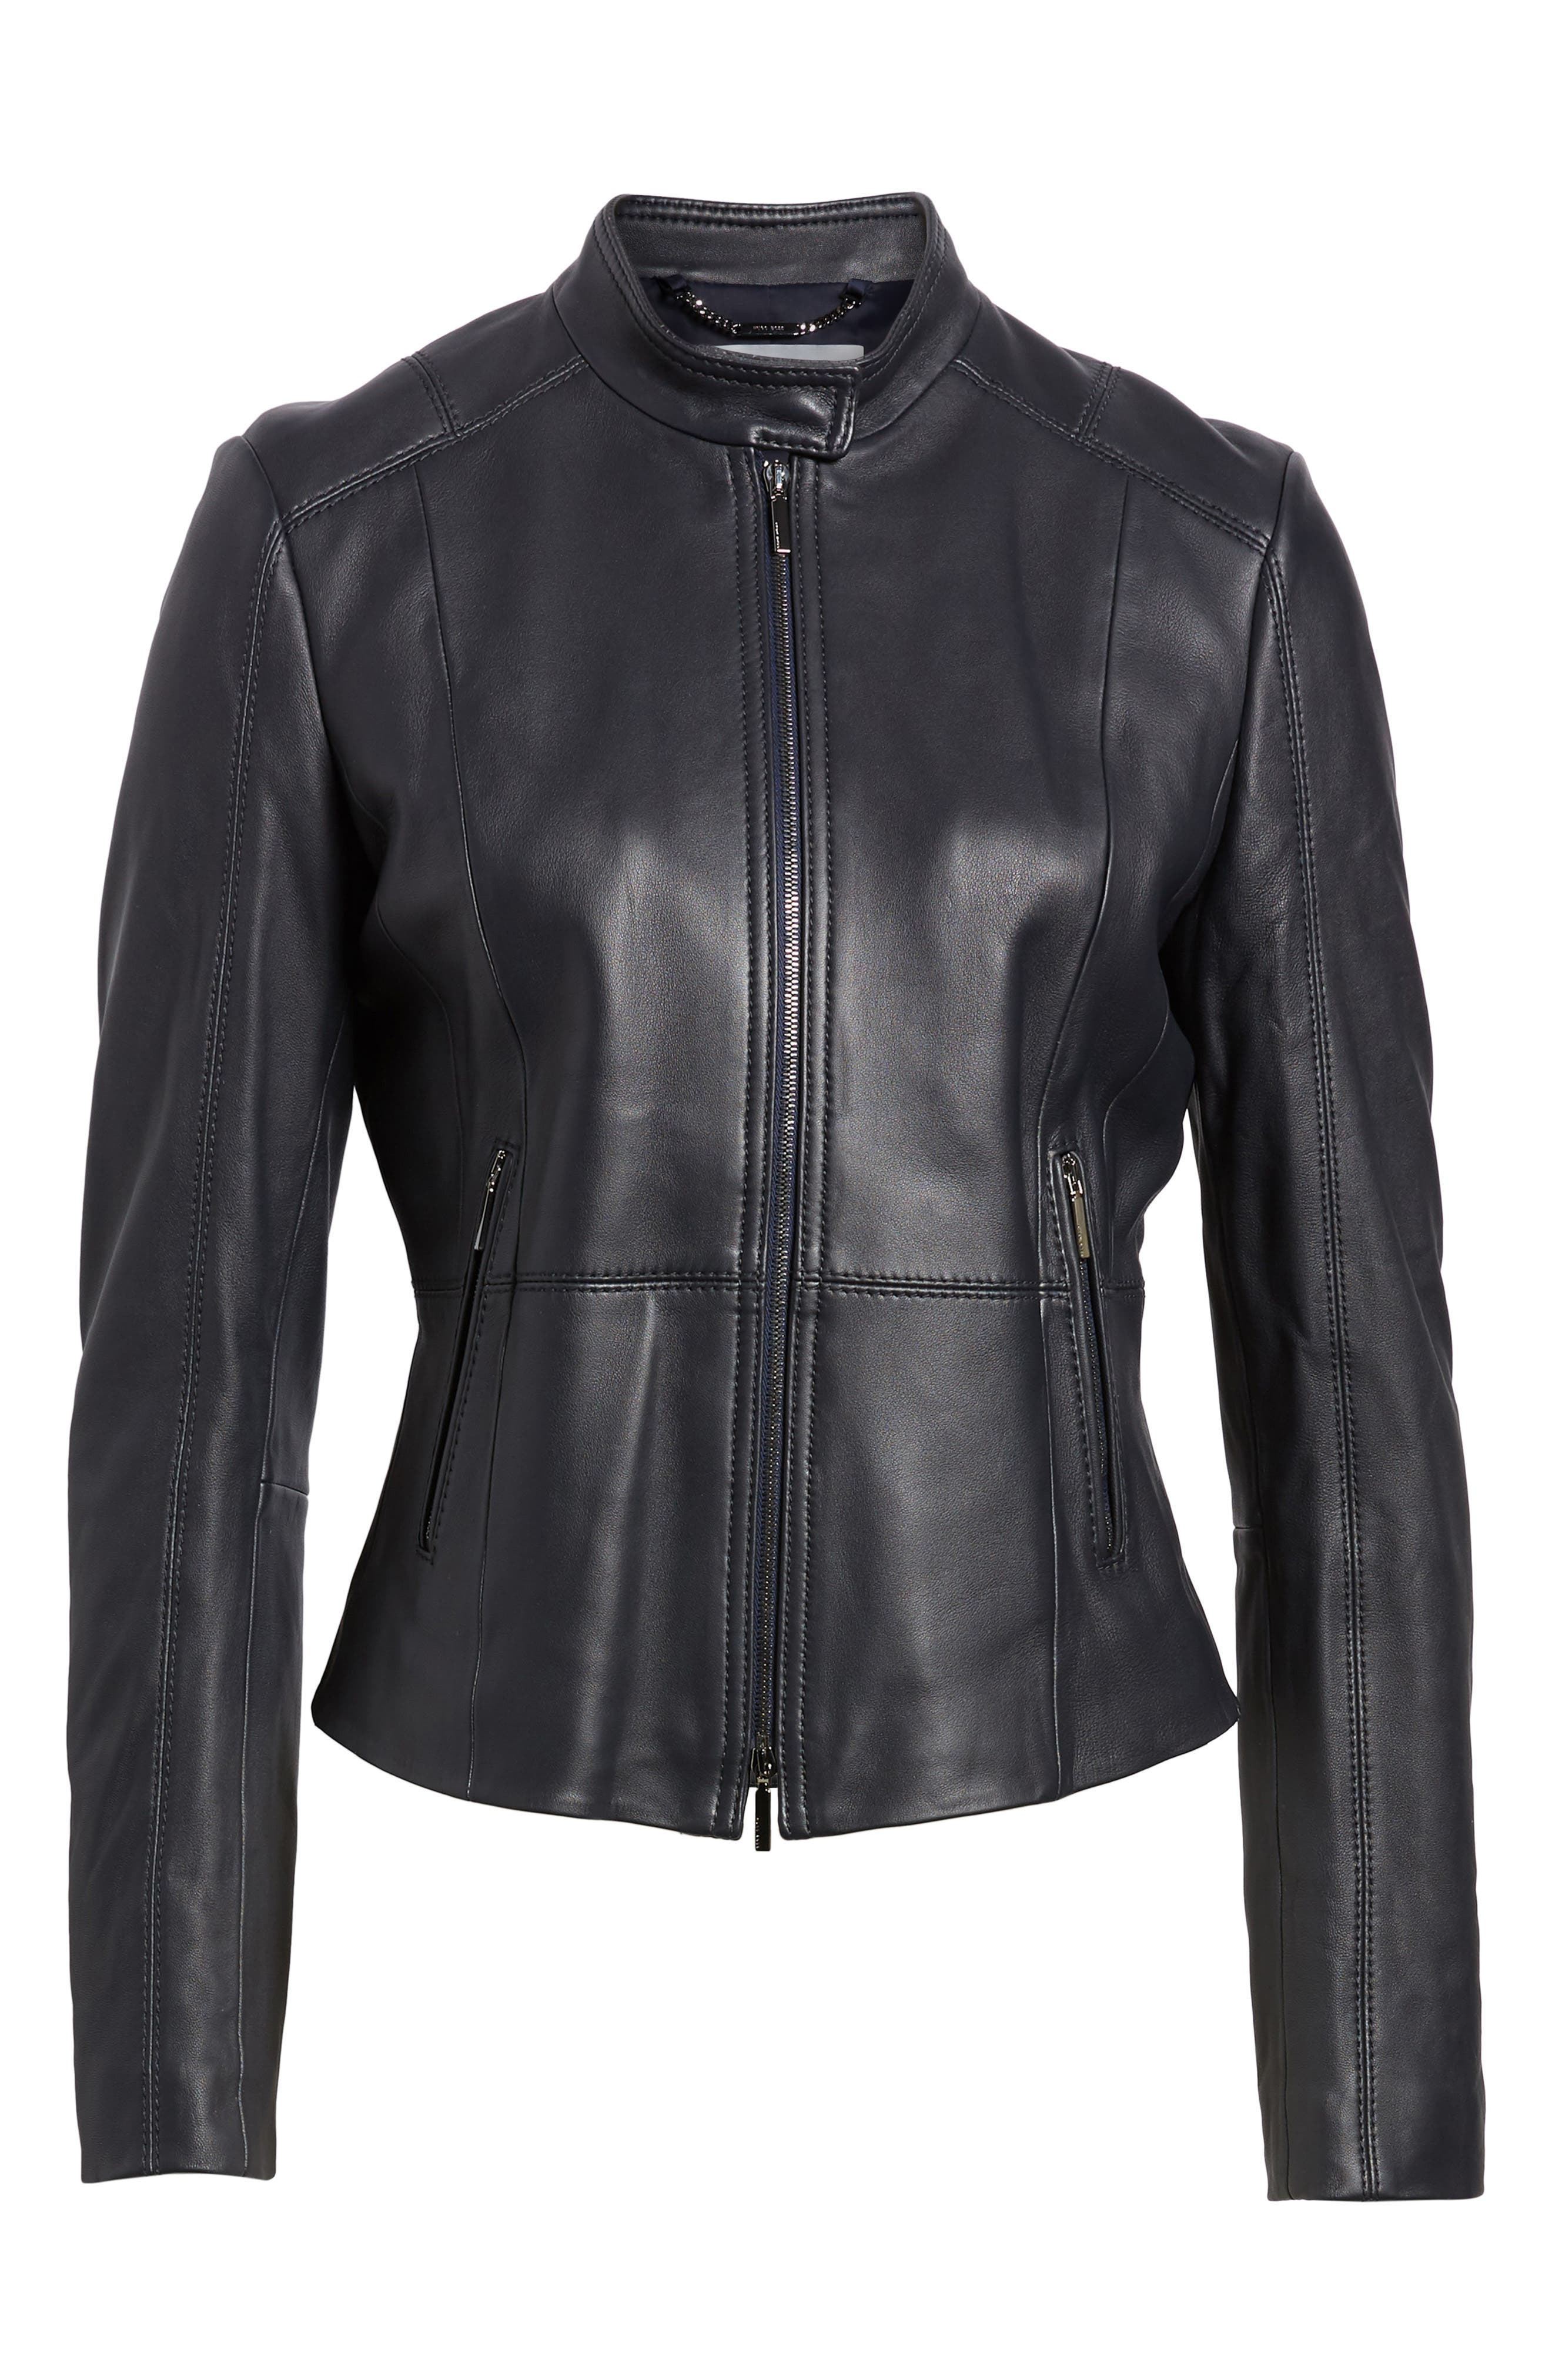 Sammonaie Leather Jacket,                             Alternate thumbnail 5, color,                             480